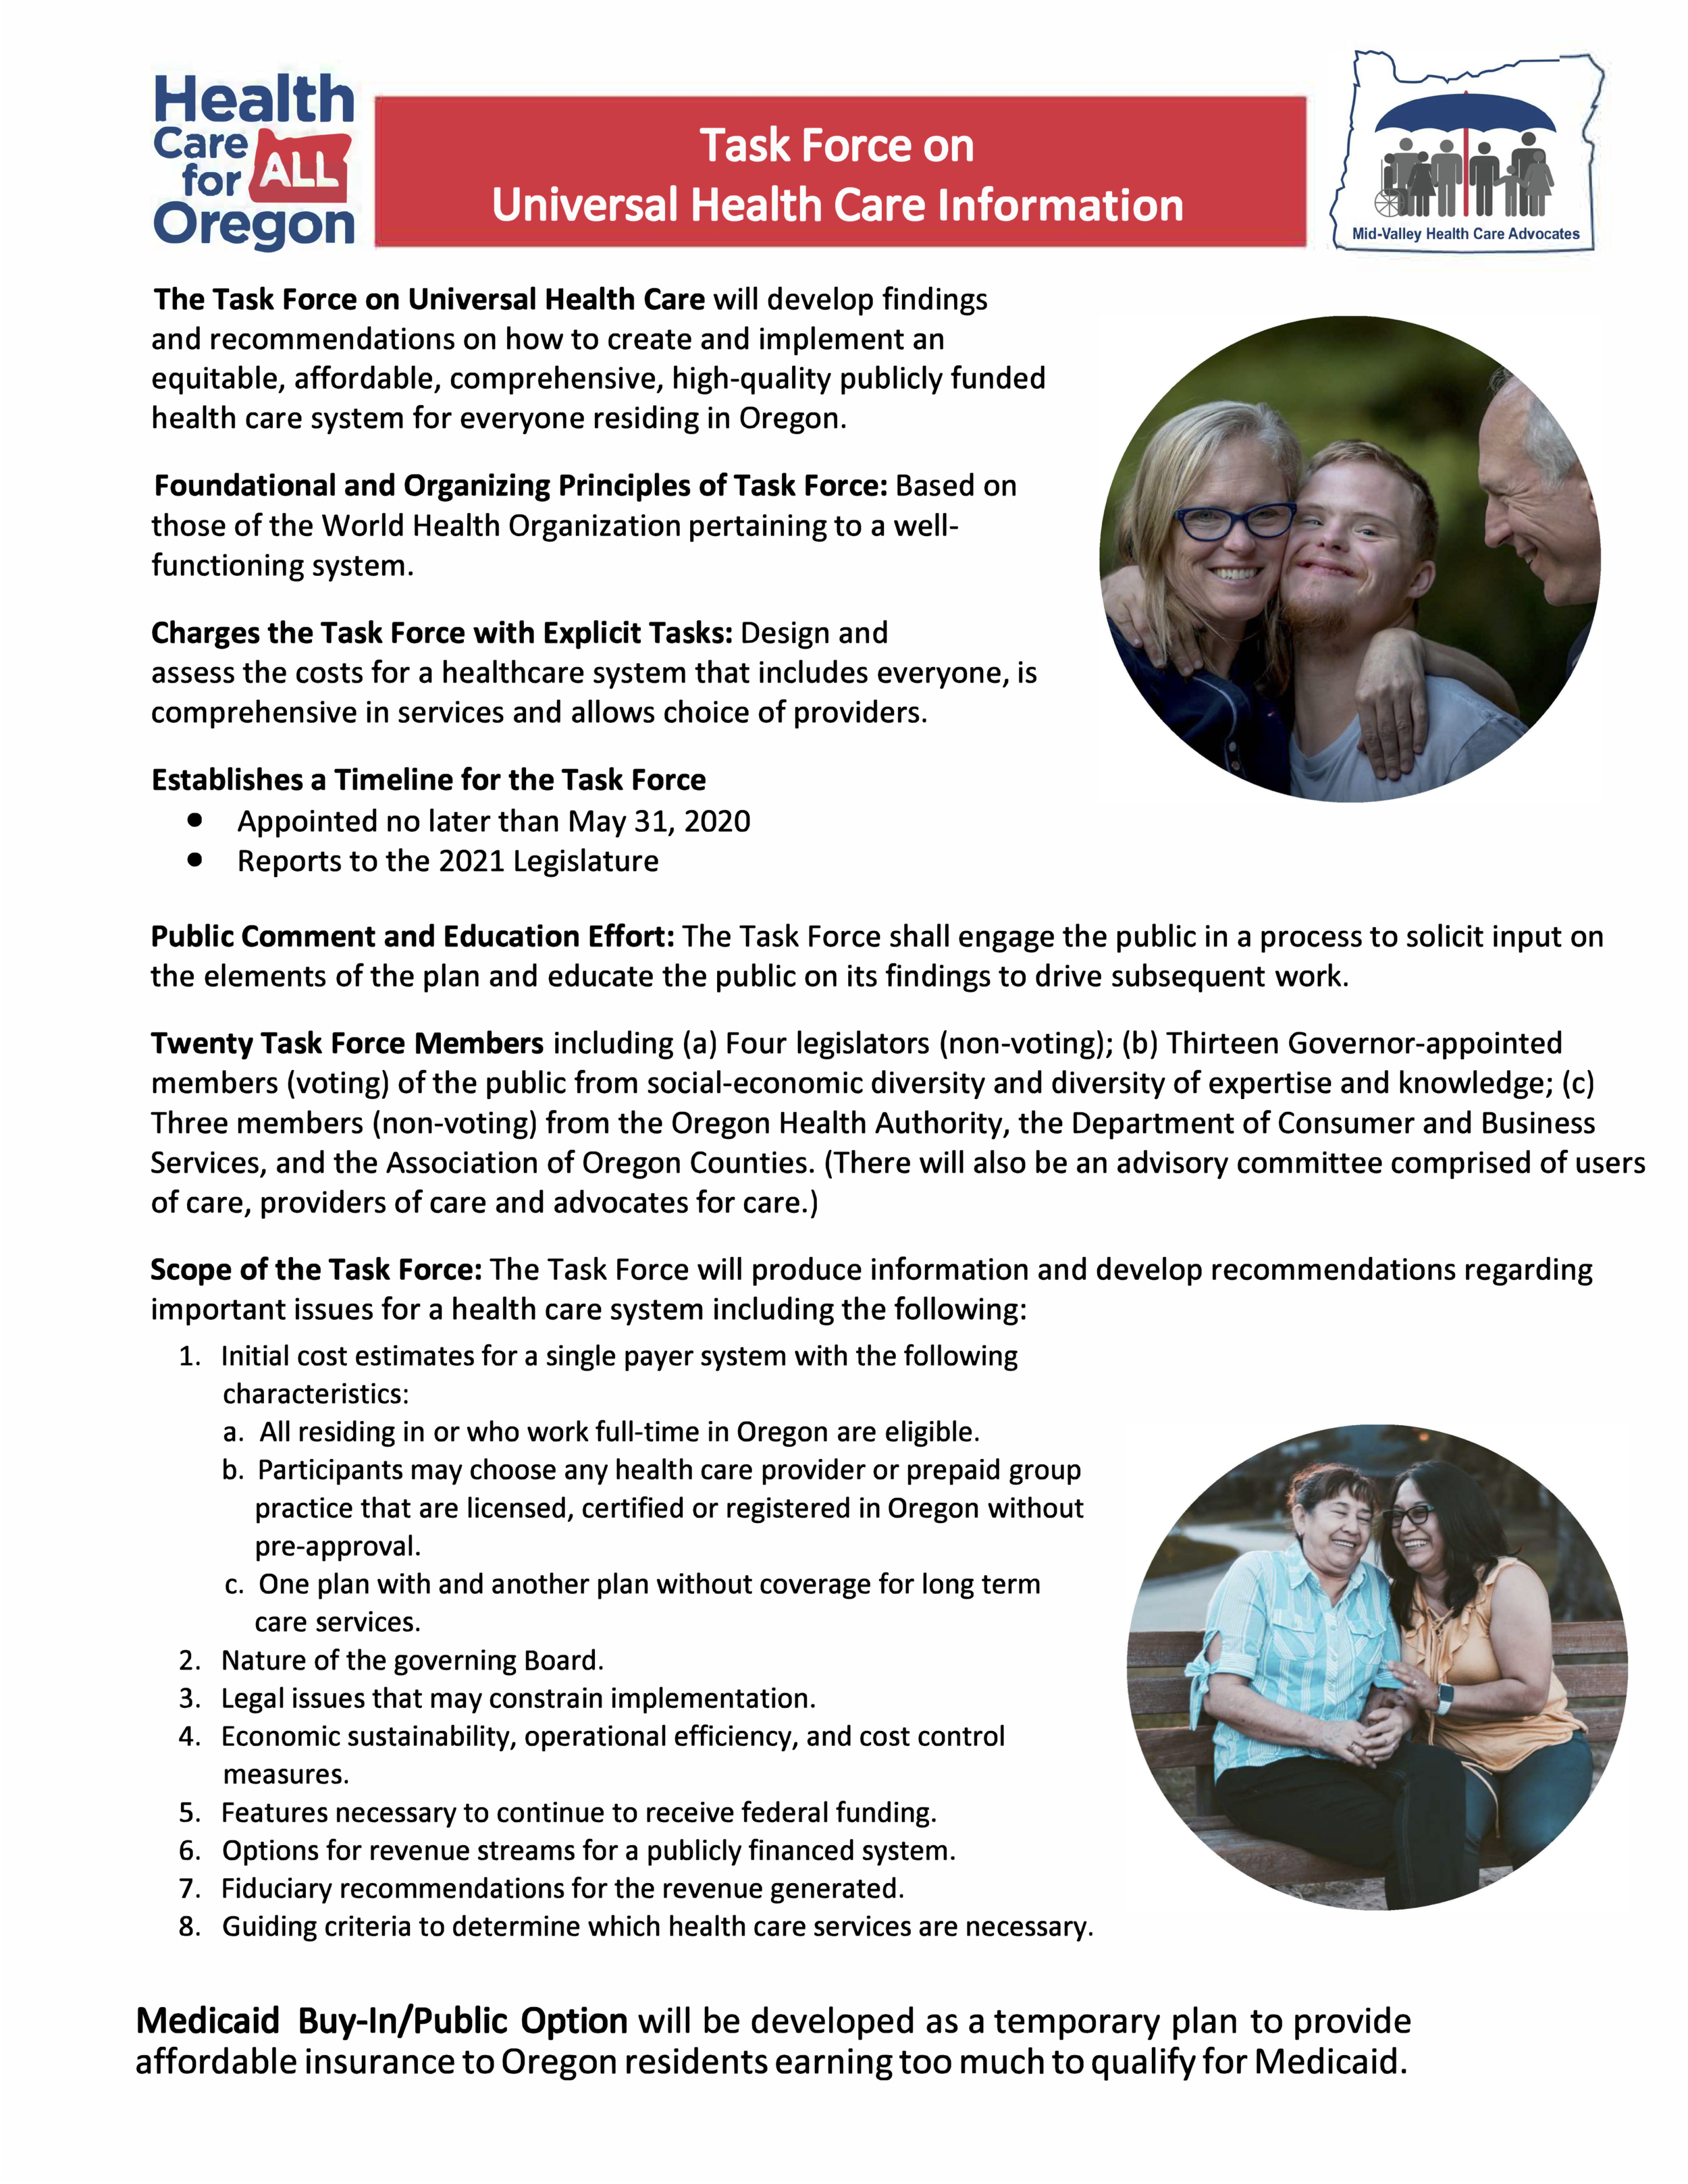 SB770 Flyer August 29, 2019 page 2.png